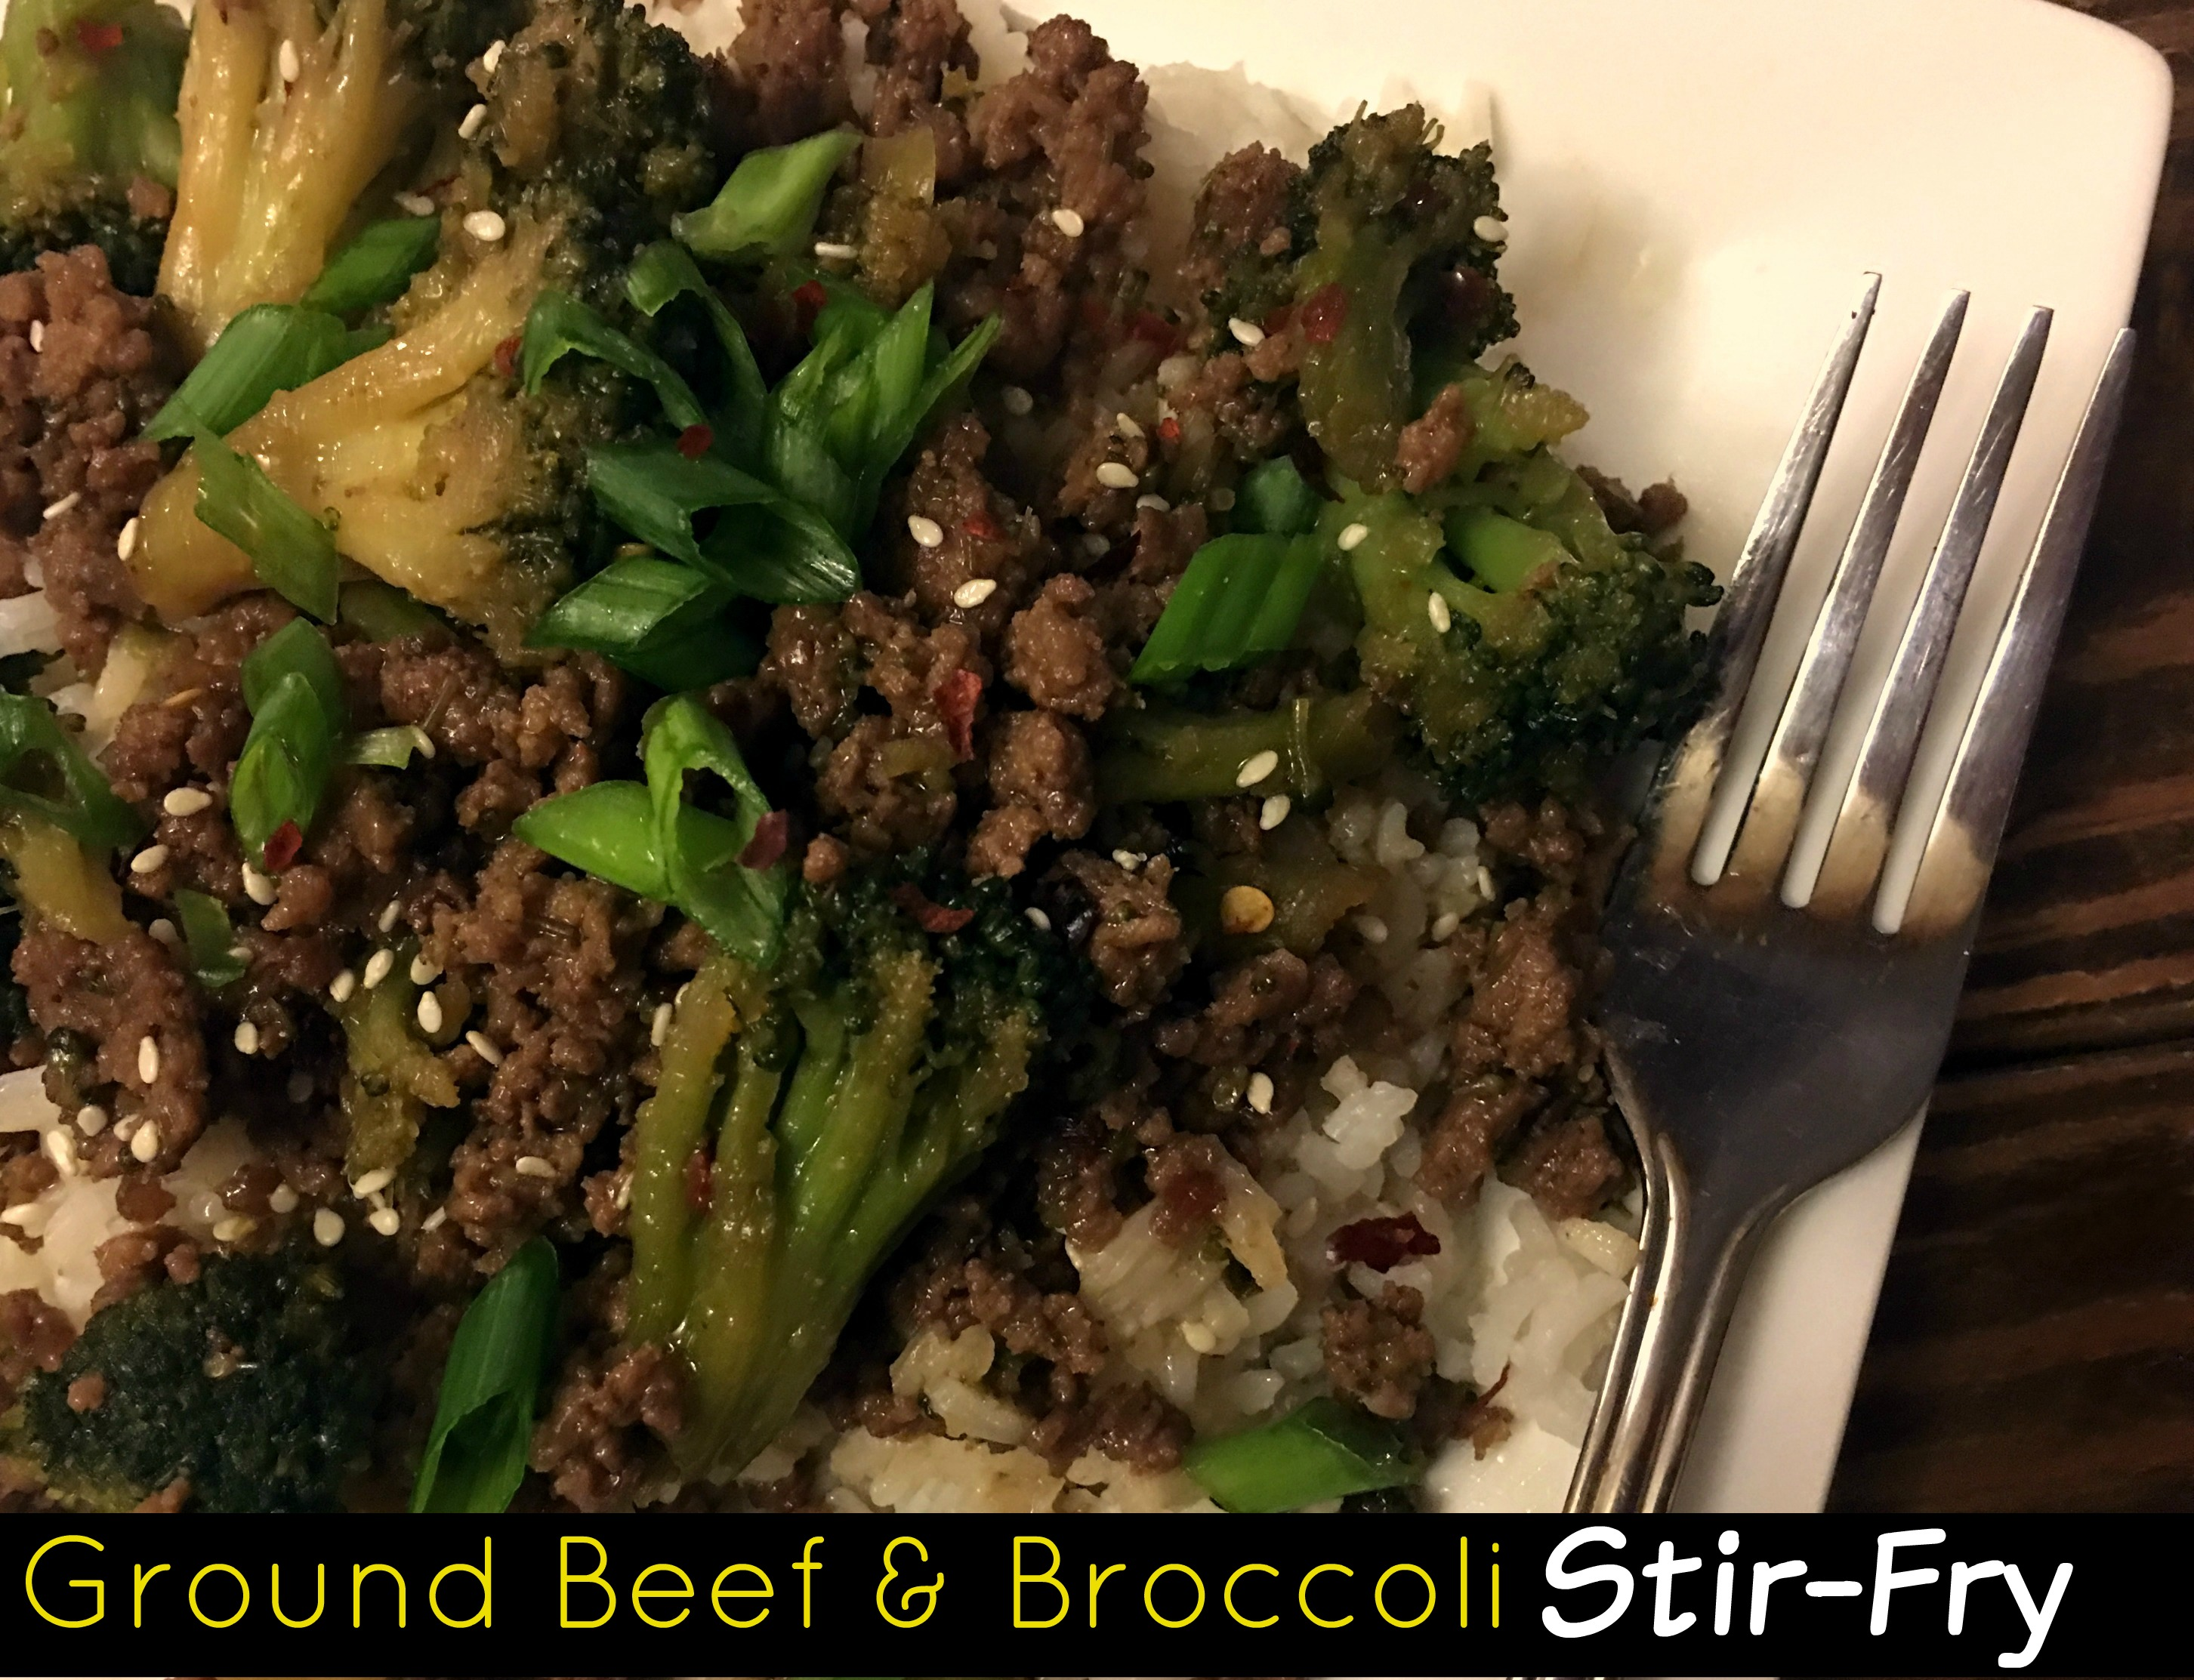 Ground Beef & Broccoli Stir-Fry